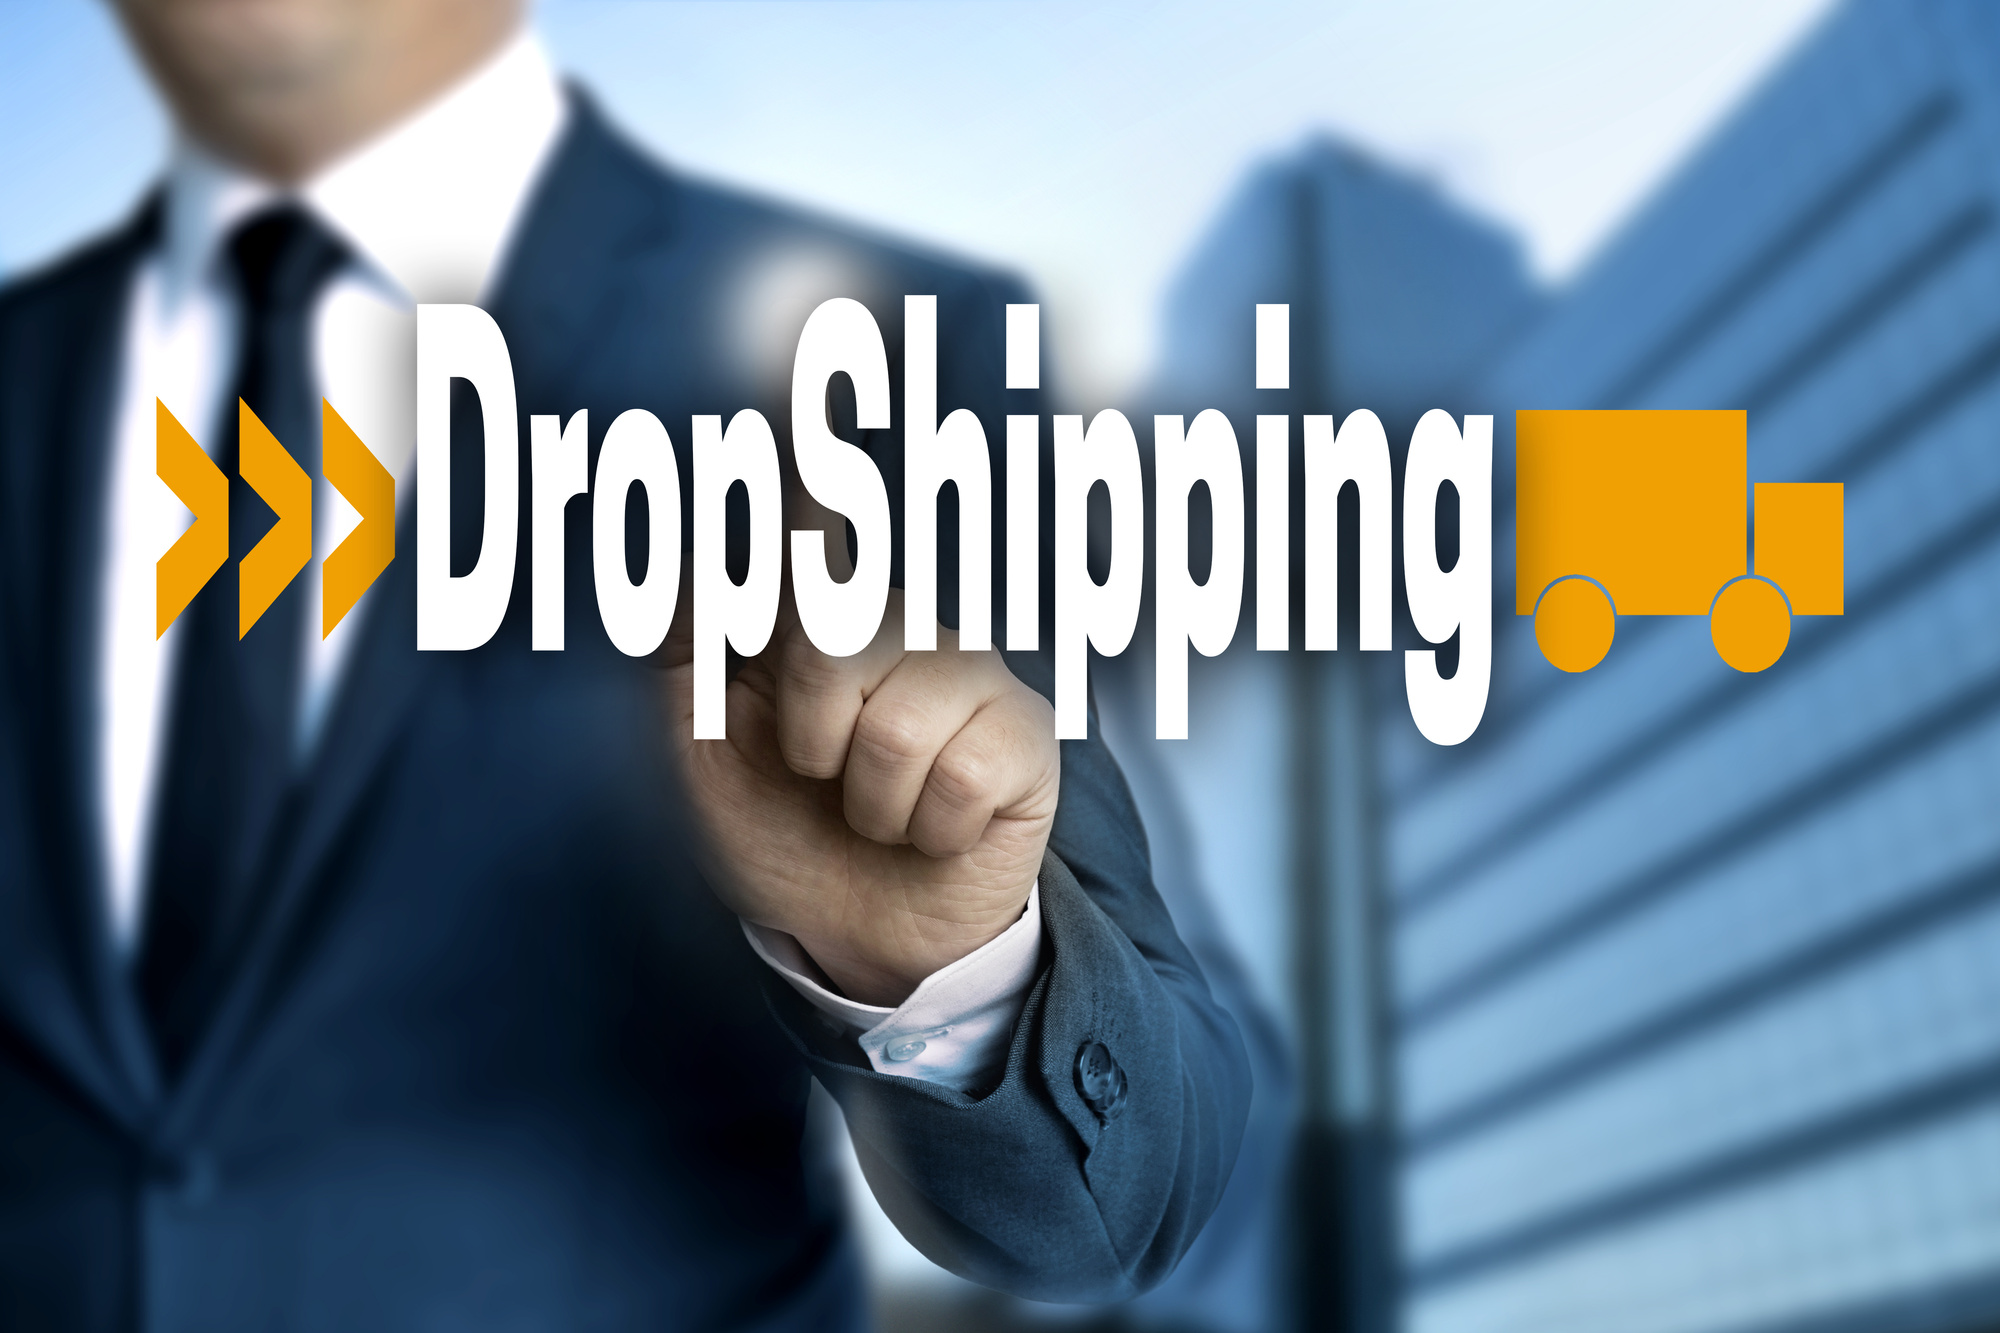 What is Dropshipping? Is Dropshipping Legal? We've Got The Answers